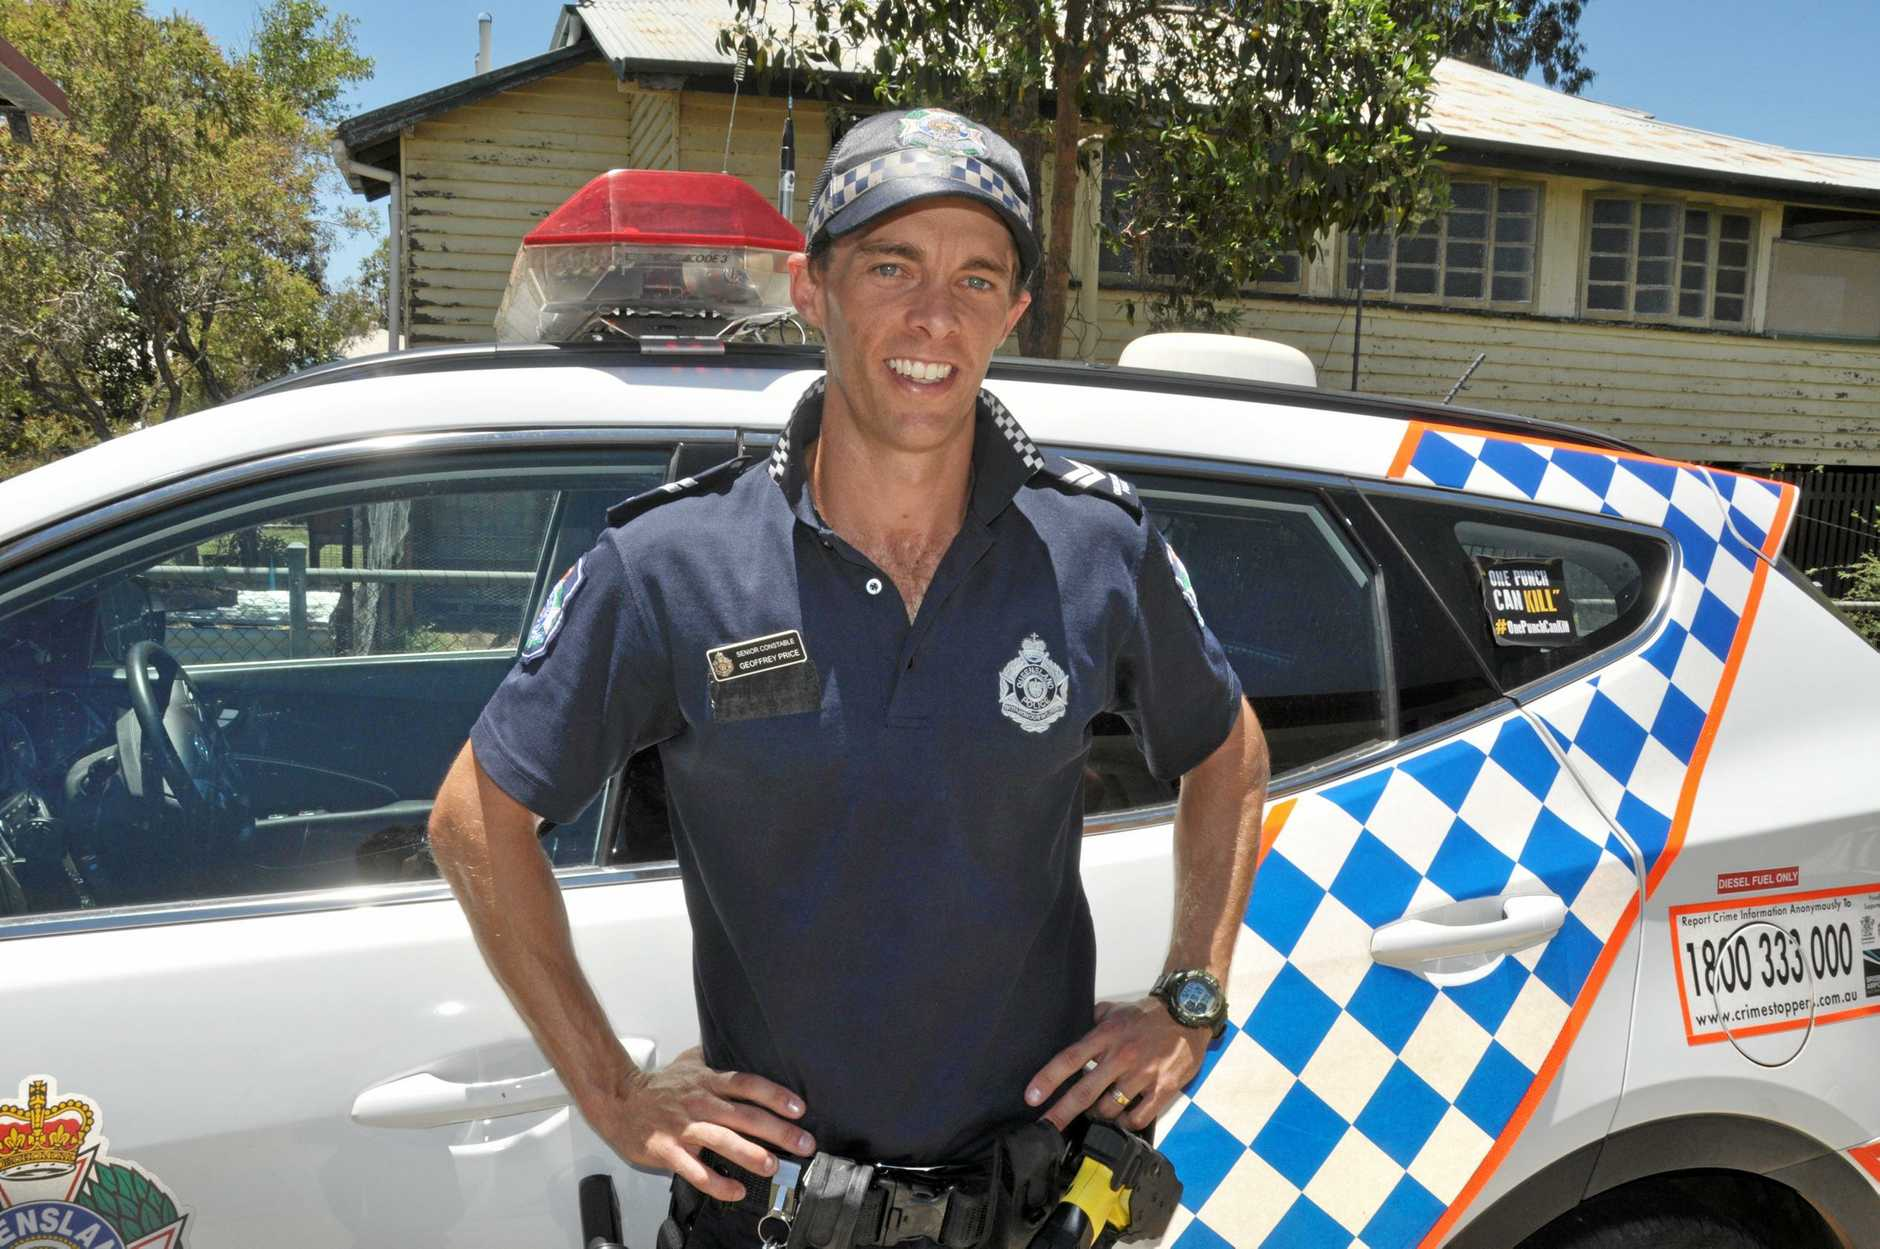 ON THE BEAT: Senior Constable Geoff Price has relocated from the Whitsunday region to becomethe newest member of the Eidsvold Police.